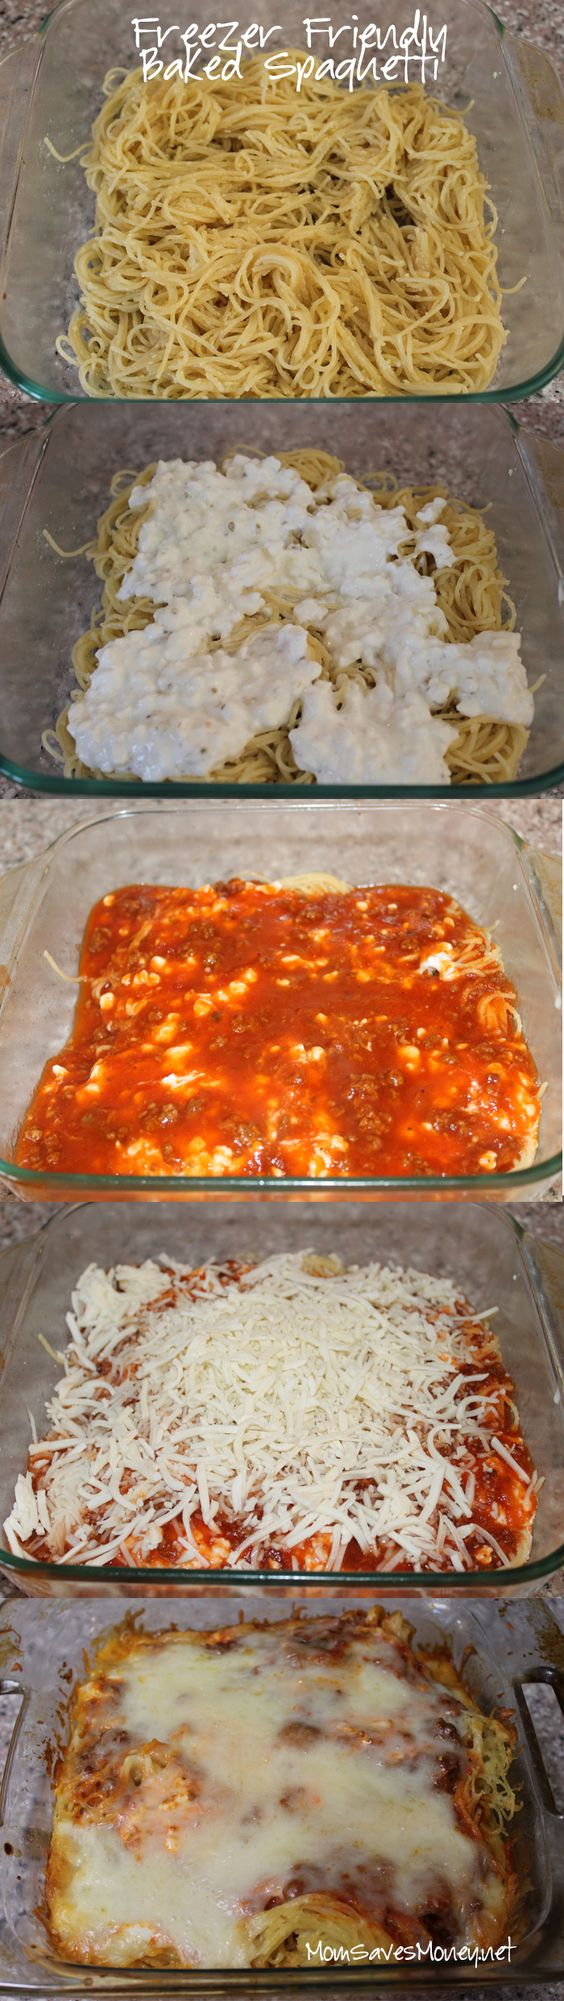 Freezer Friendly Baked Spaghetti Recipe via Mom Saves Money - This easy baked spaghetti recipe is freezer friendly! Make a double or triple batch and freeze extras for a quick dinner!